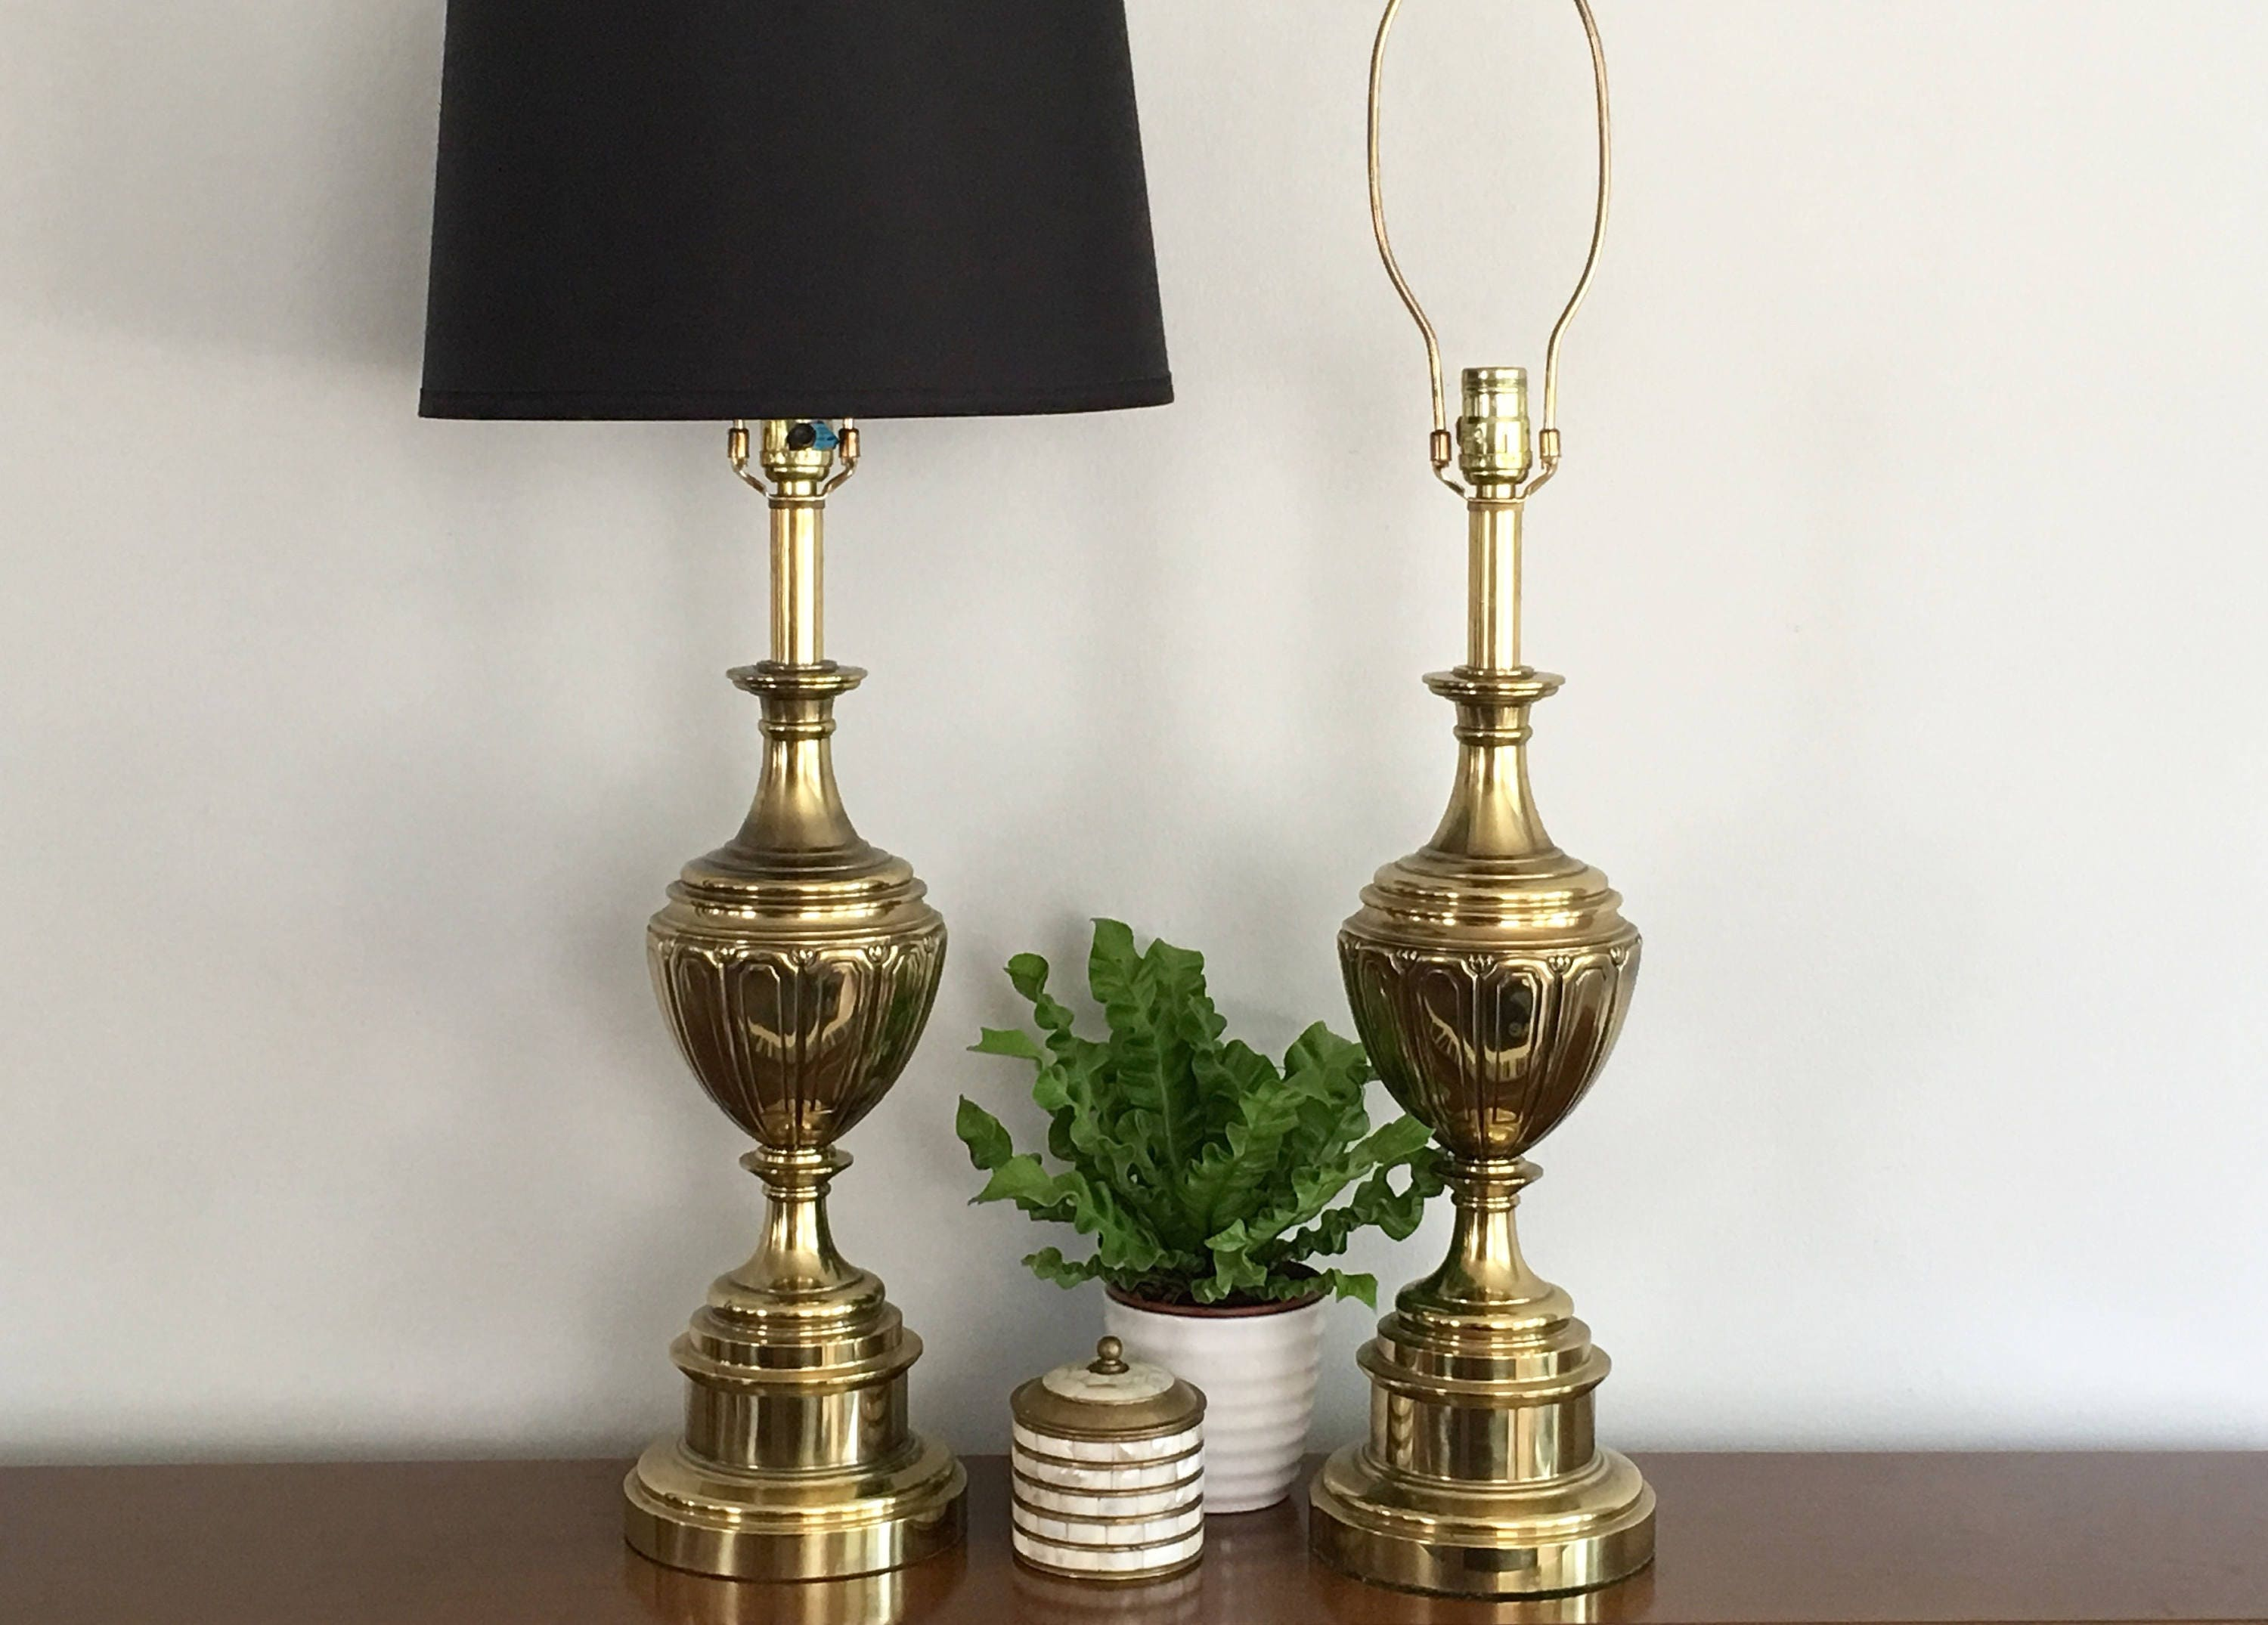 Vintage stiffel brass table lamps - Pair Brass Stiffel Table Lamps Vintage Brass Trophy Urn Table Lamp